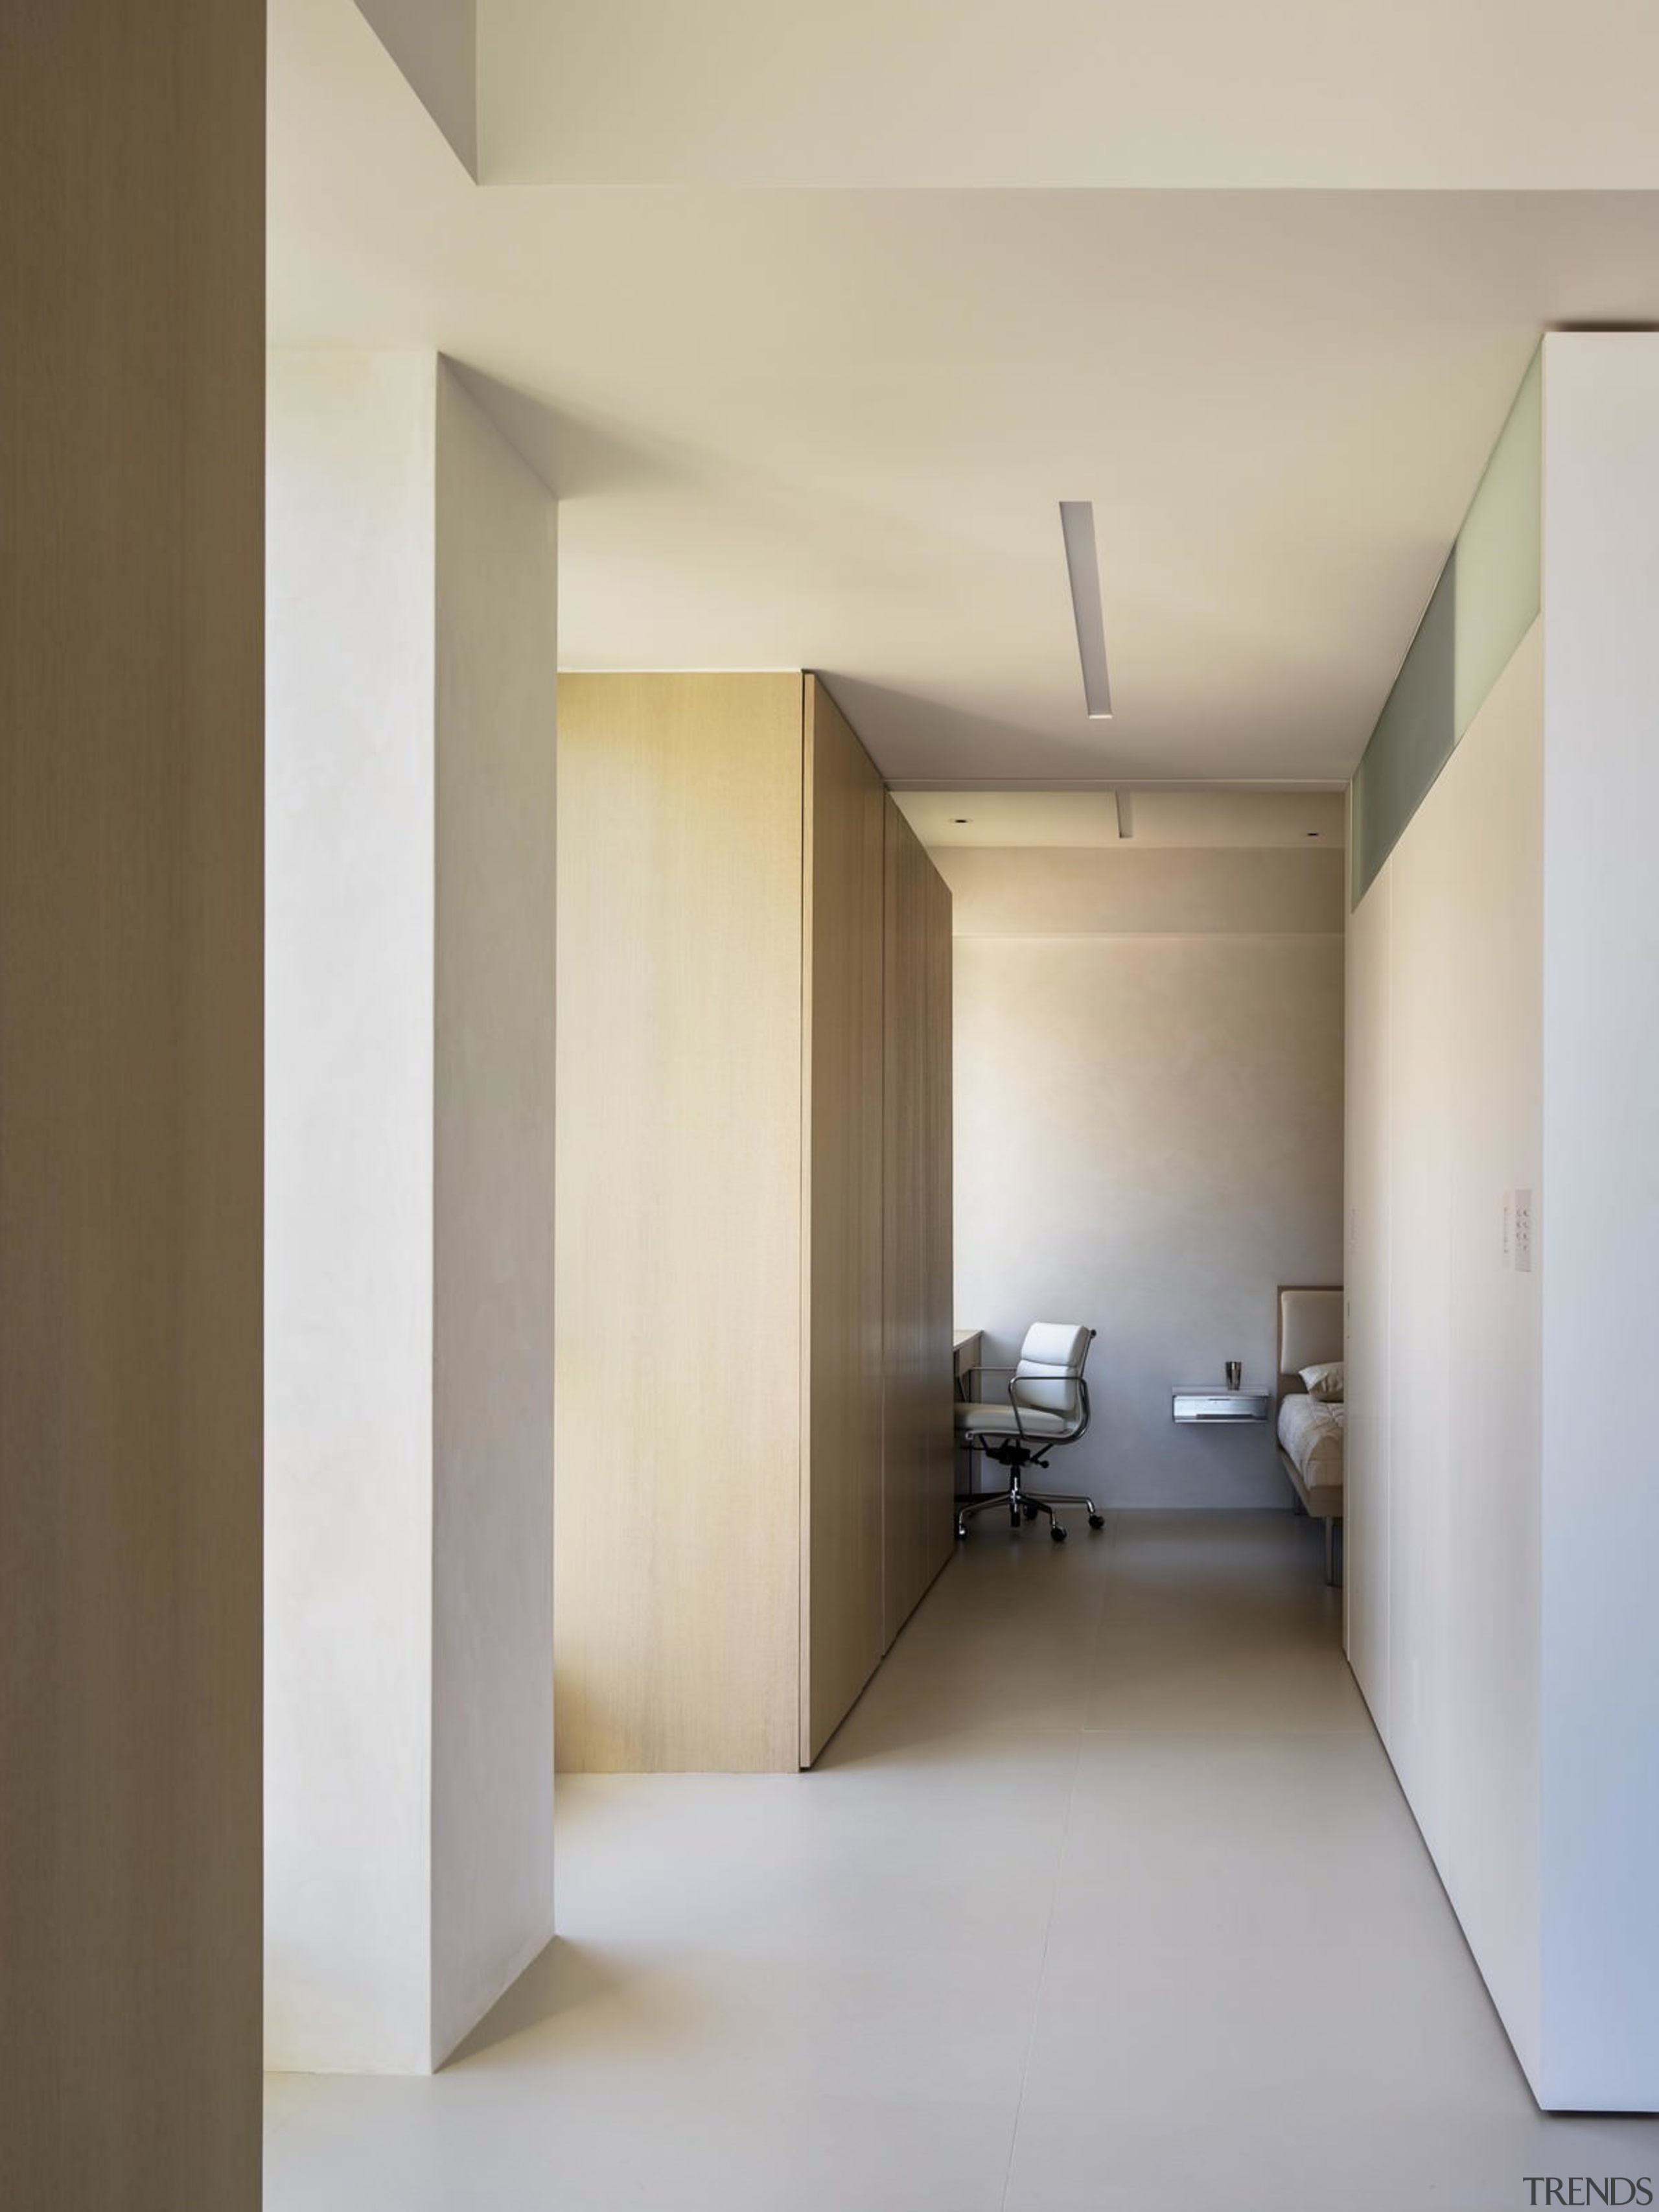 The minimal hallway allows the furniture to stand architecture, ceiling, daylighting, floor, house, interior design, real estate, gray